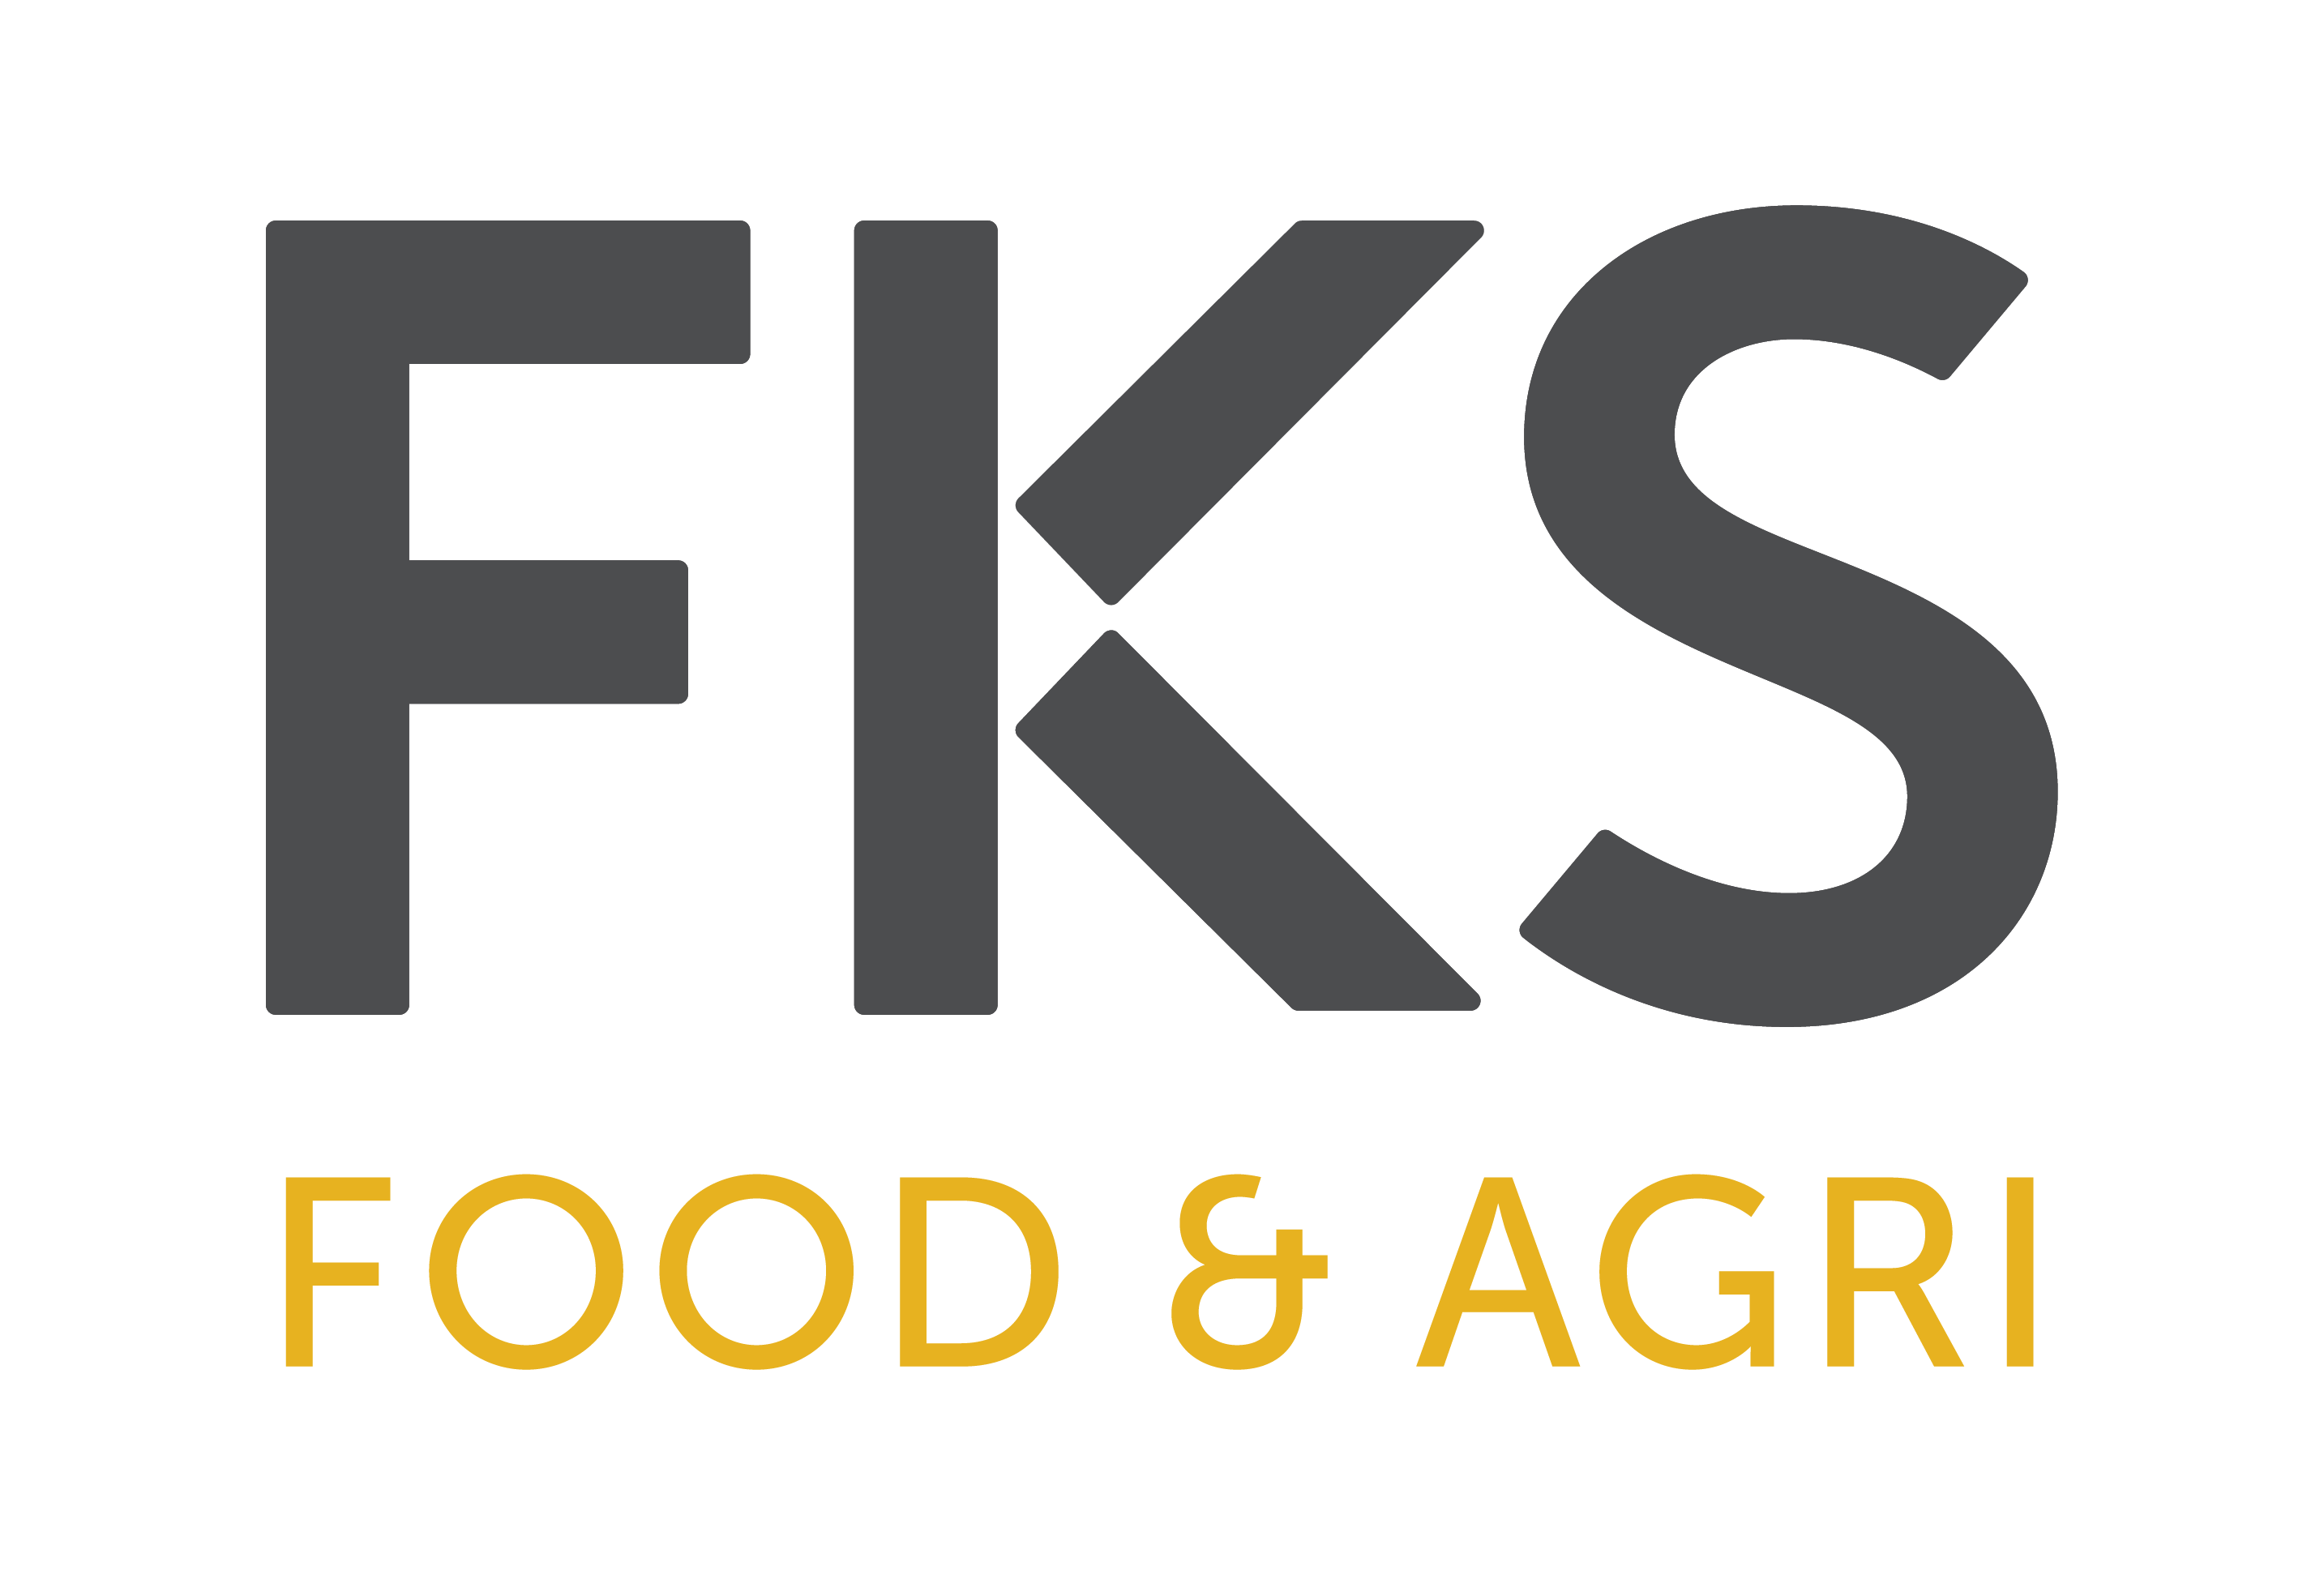 Proterra Investment Partners to Participate in FKS Food & Agri